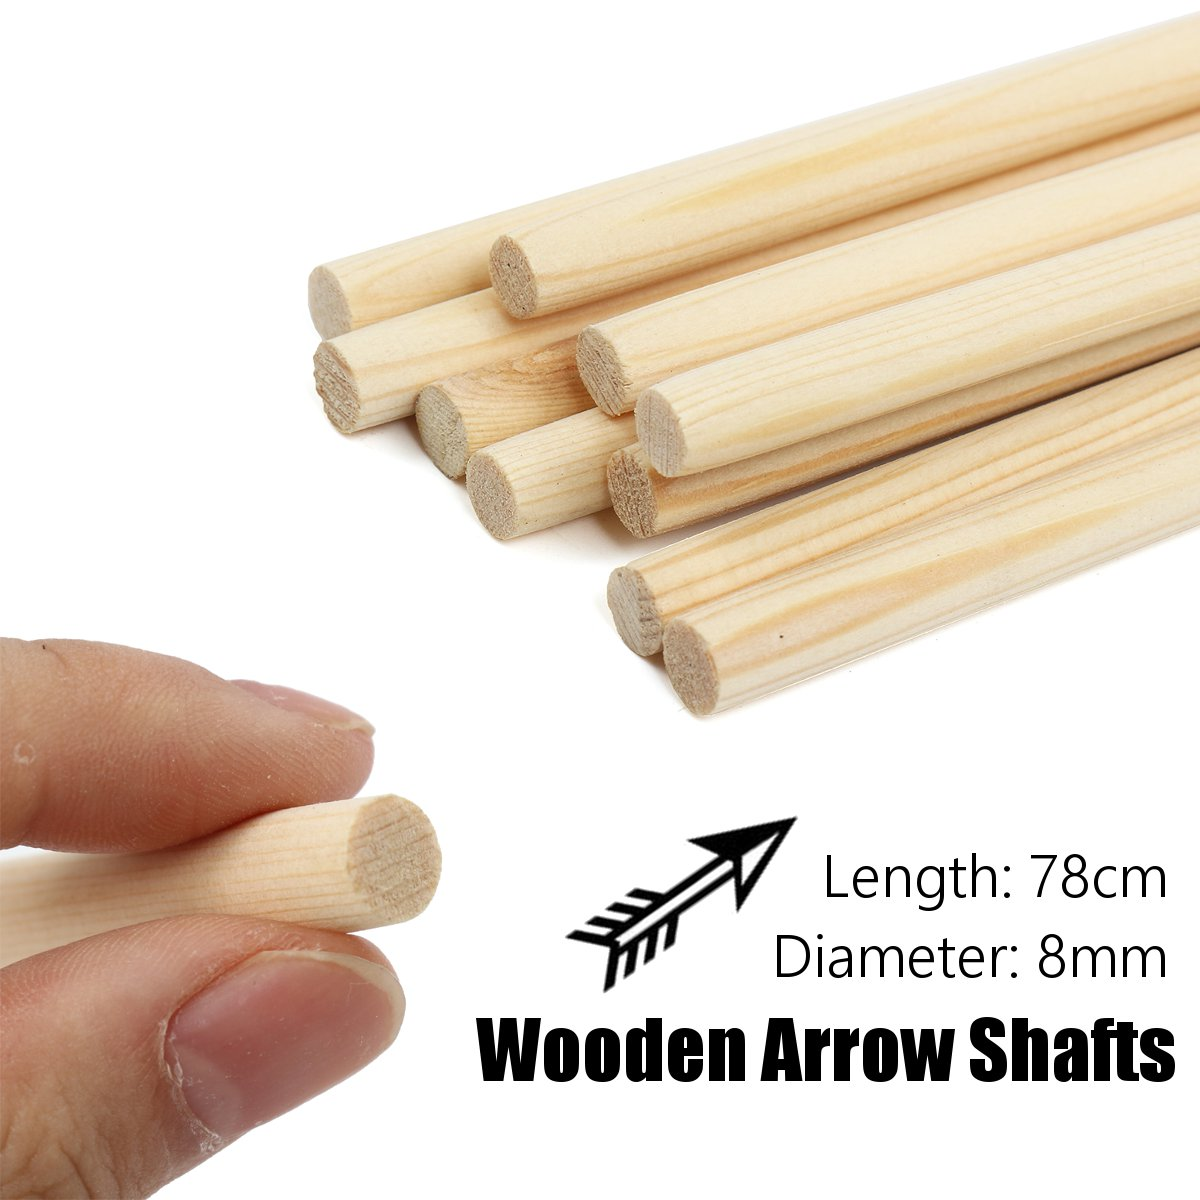 10Pcs/Set 8mm Wooden Archery Arrow Shafts 78CM DIY Handmade Bow Target Wooden Archery Arrow Shafts Outdoor Hunting Accessories